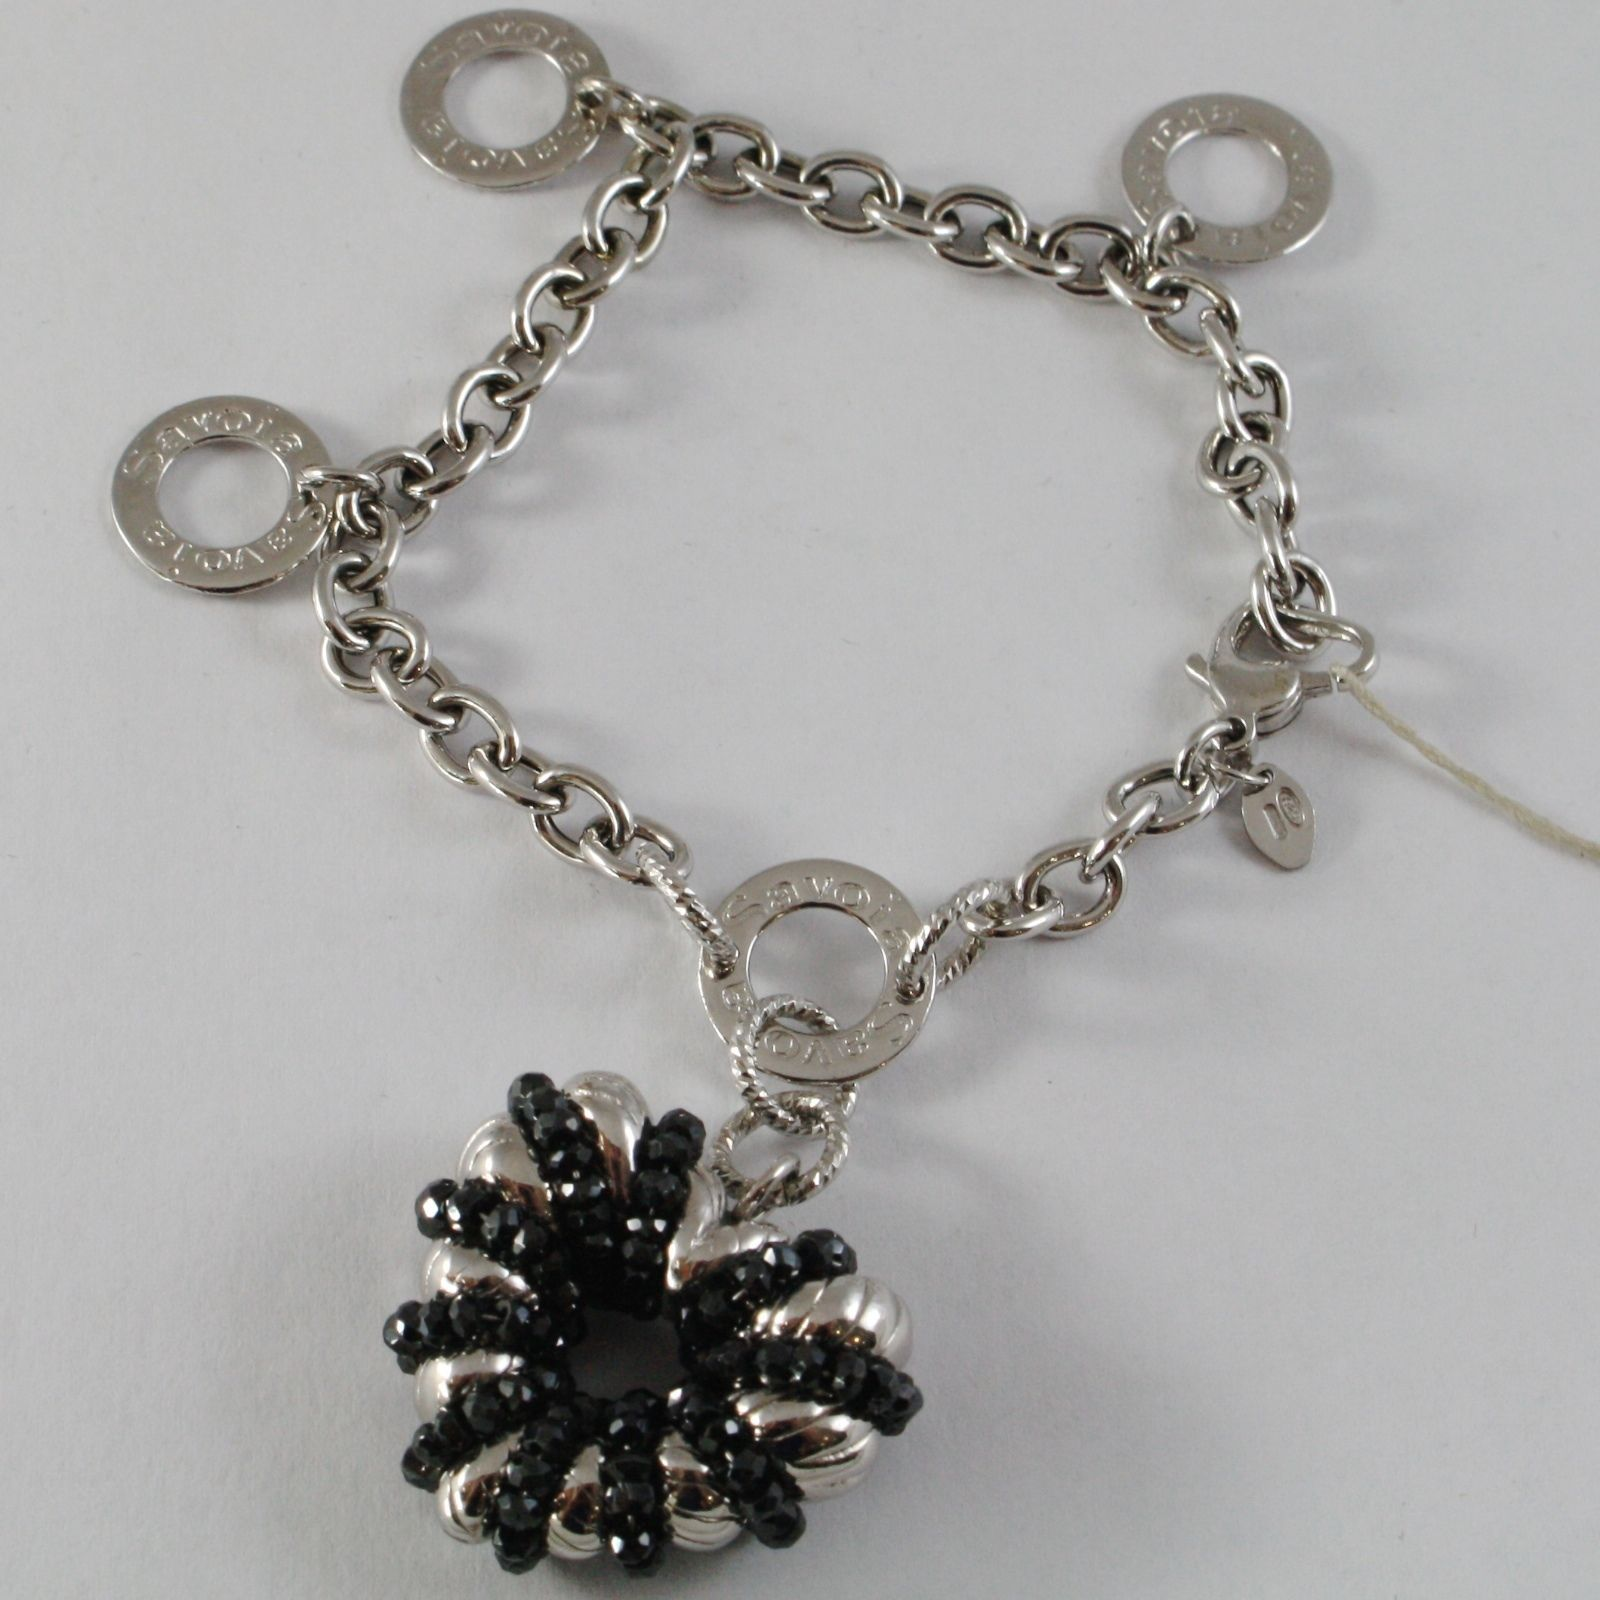 925 SILVER BRACELET, ROLO' WITH HEART PENDANT MILLED AND SPINEL BLACK, CIRCLES